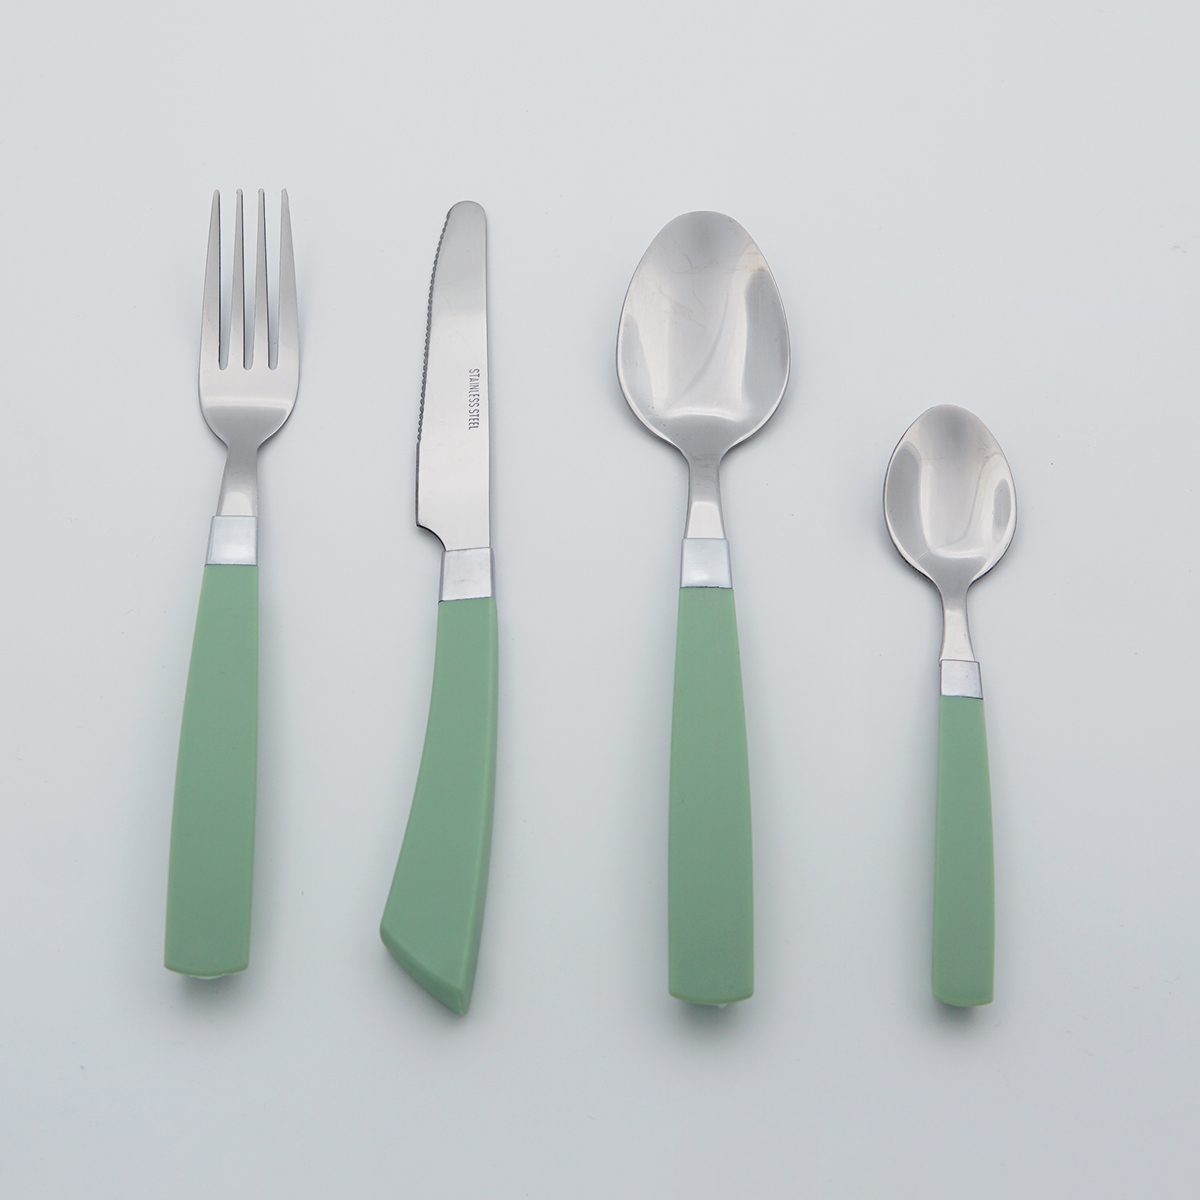 Plastic Handle Mirror Polish Stainless Steel Cutlery Food Grade Flatware Wholesale Silverware Set